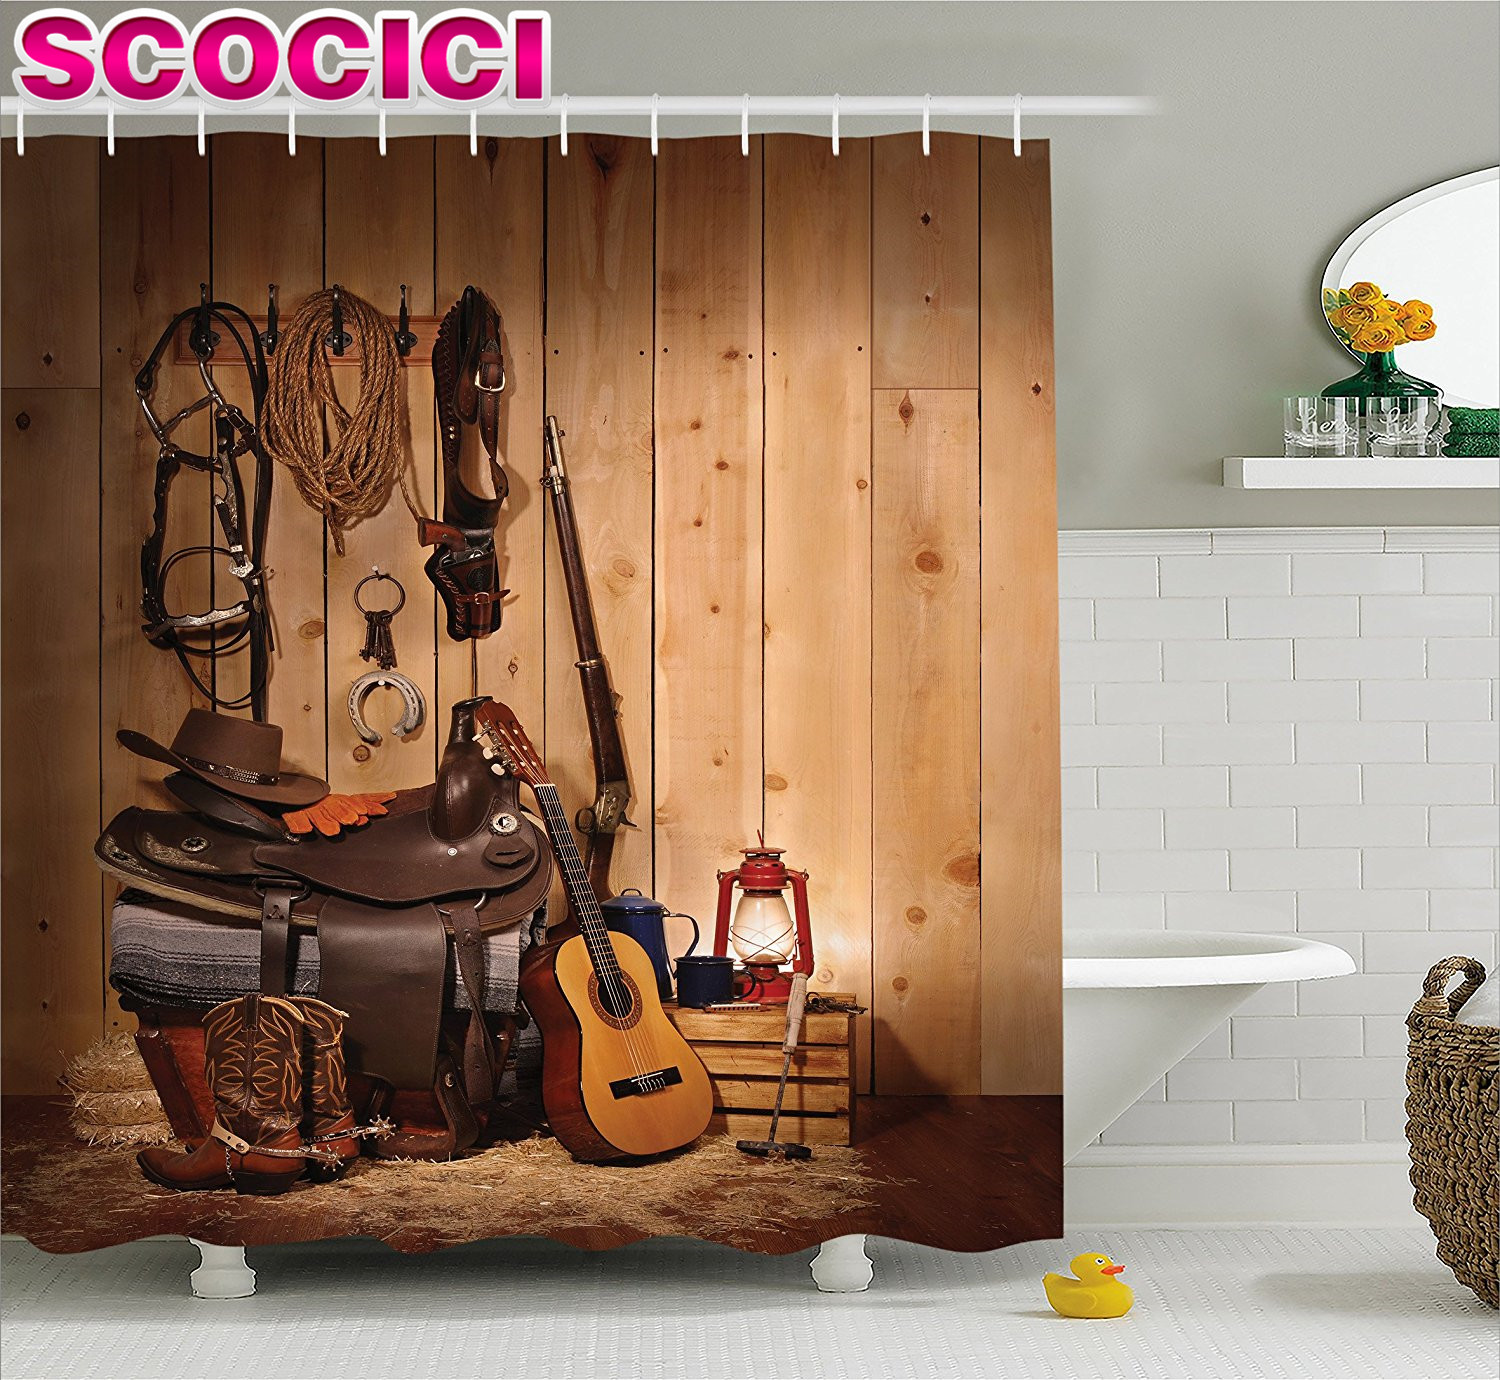 Western Decor Shower Curtain American Texas Style Country Music Guitar Cowboy Boots Usa Folk Culture Fabric Bathroom Decor Set S